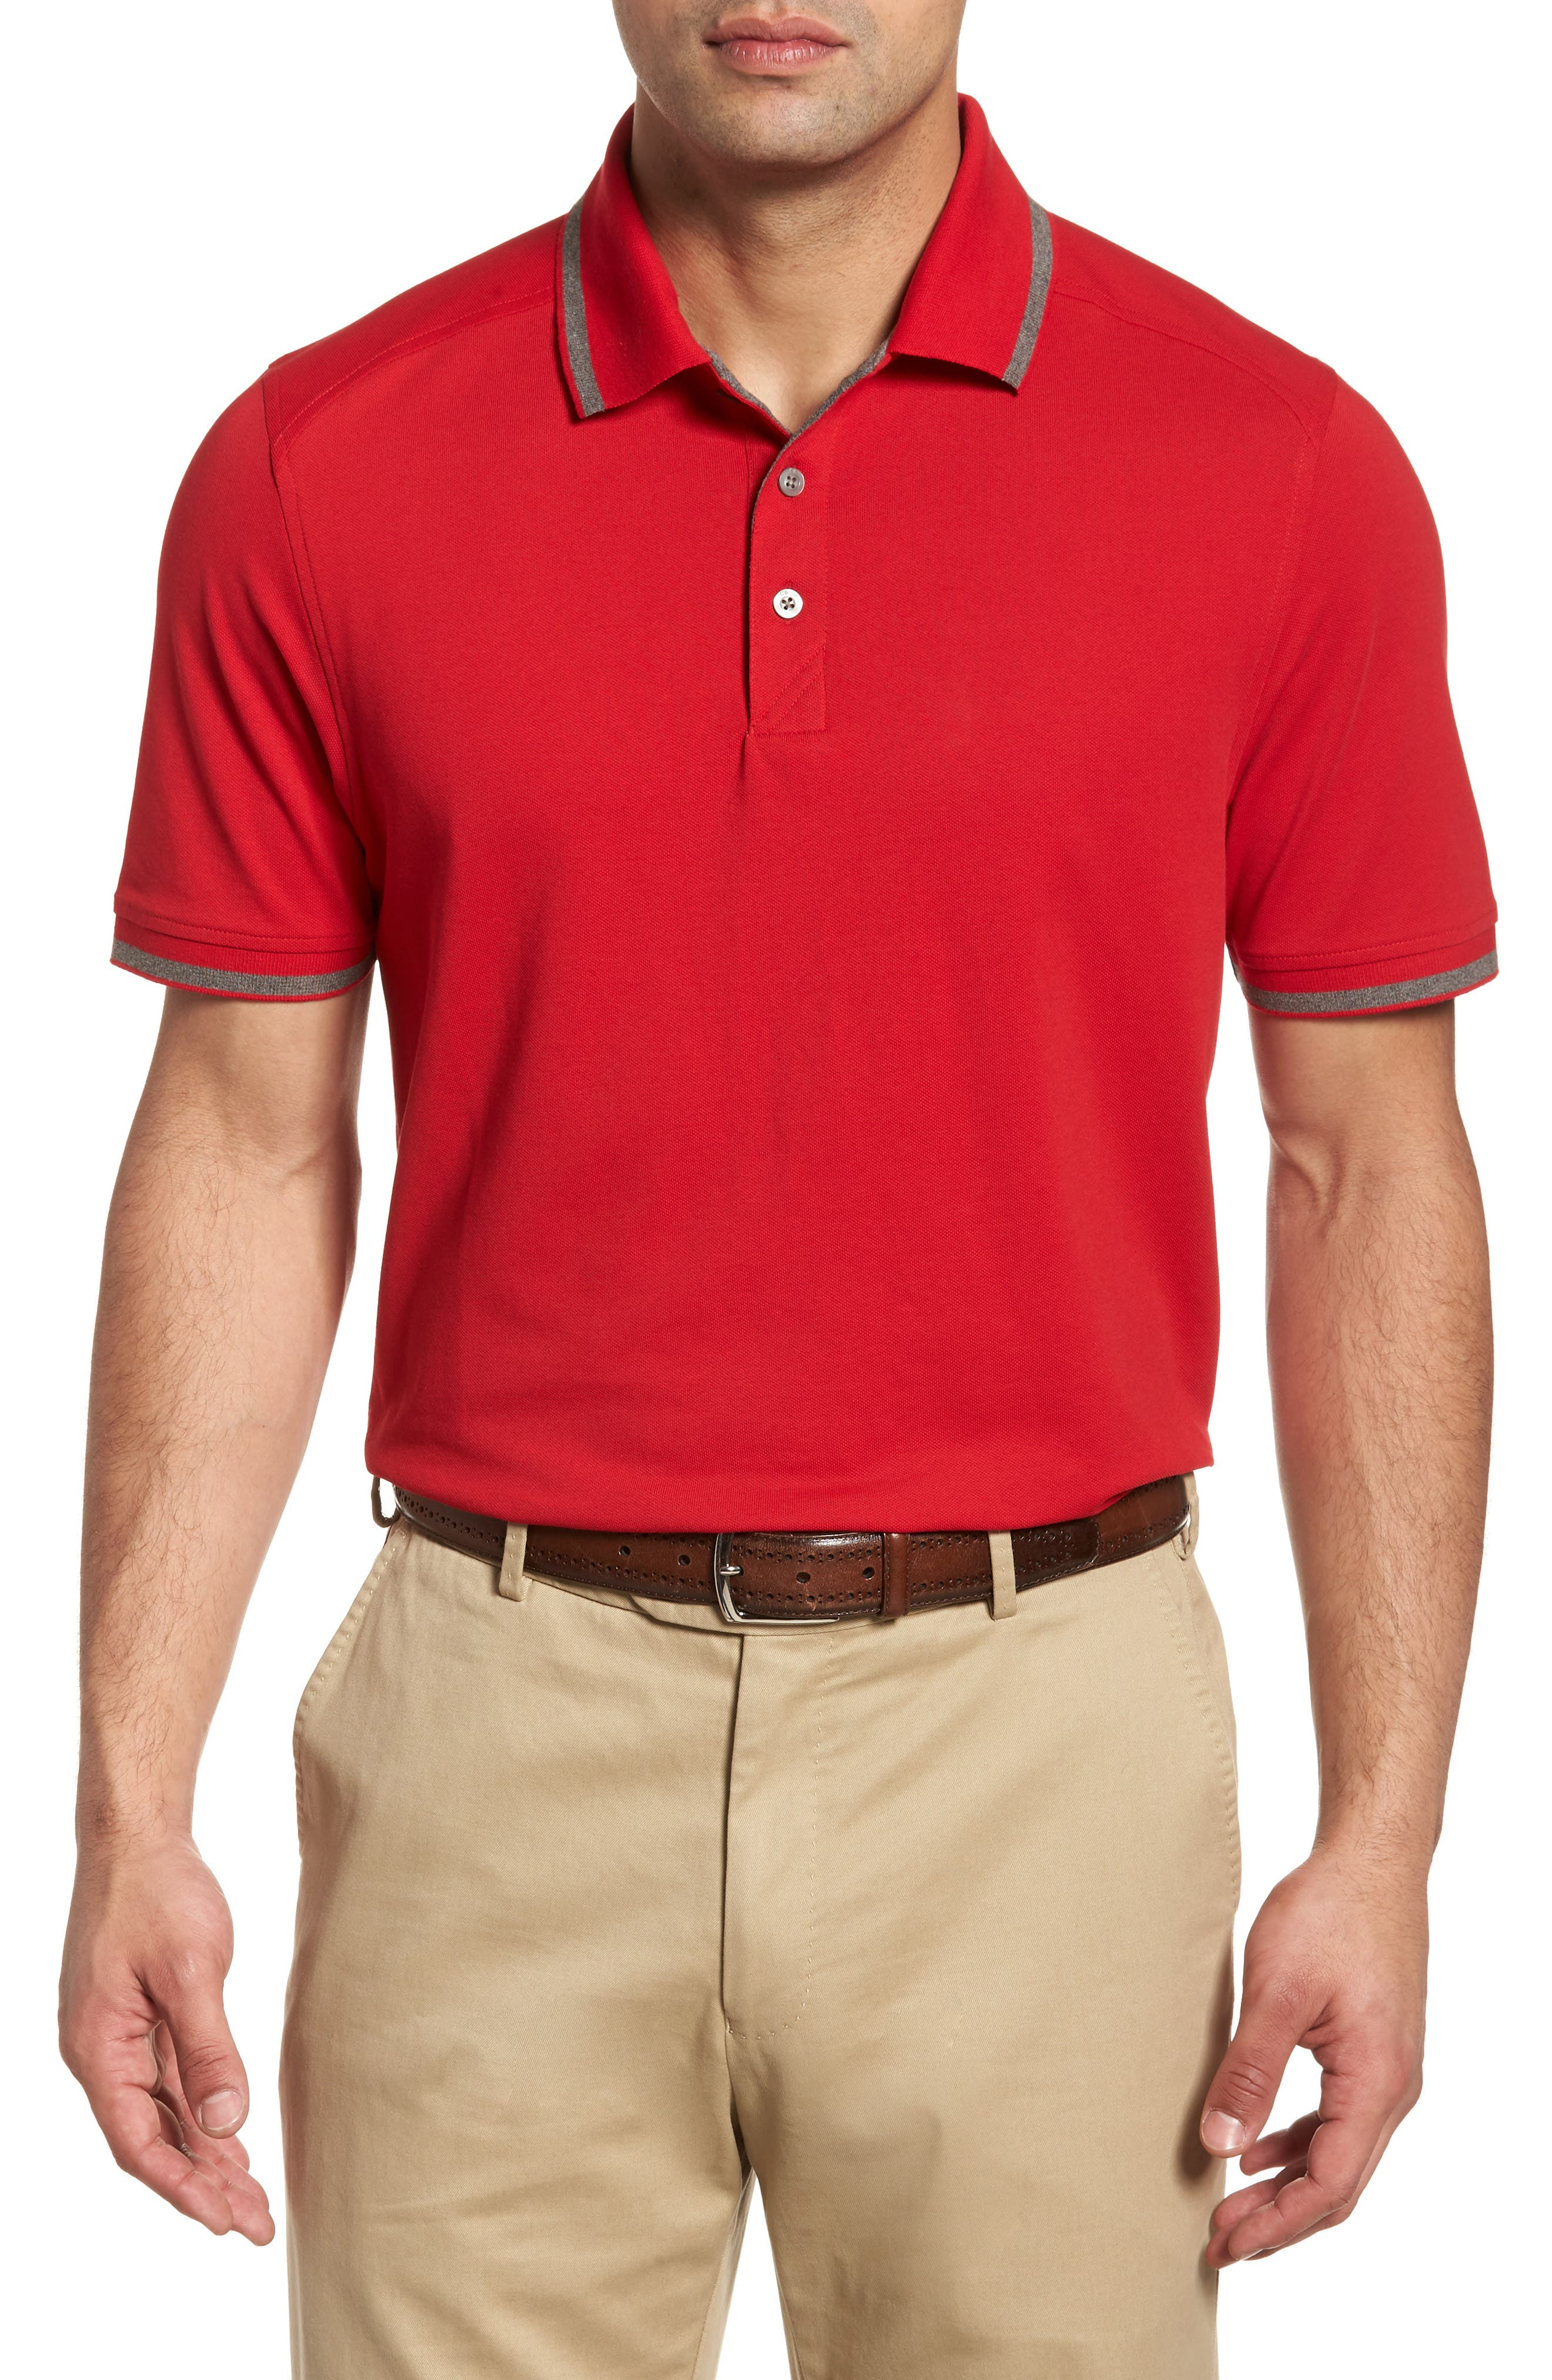 Advantage Classic Fit Tipped Drytec Polo